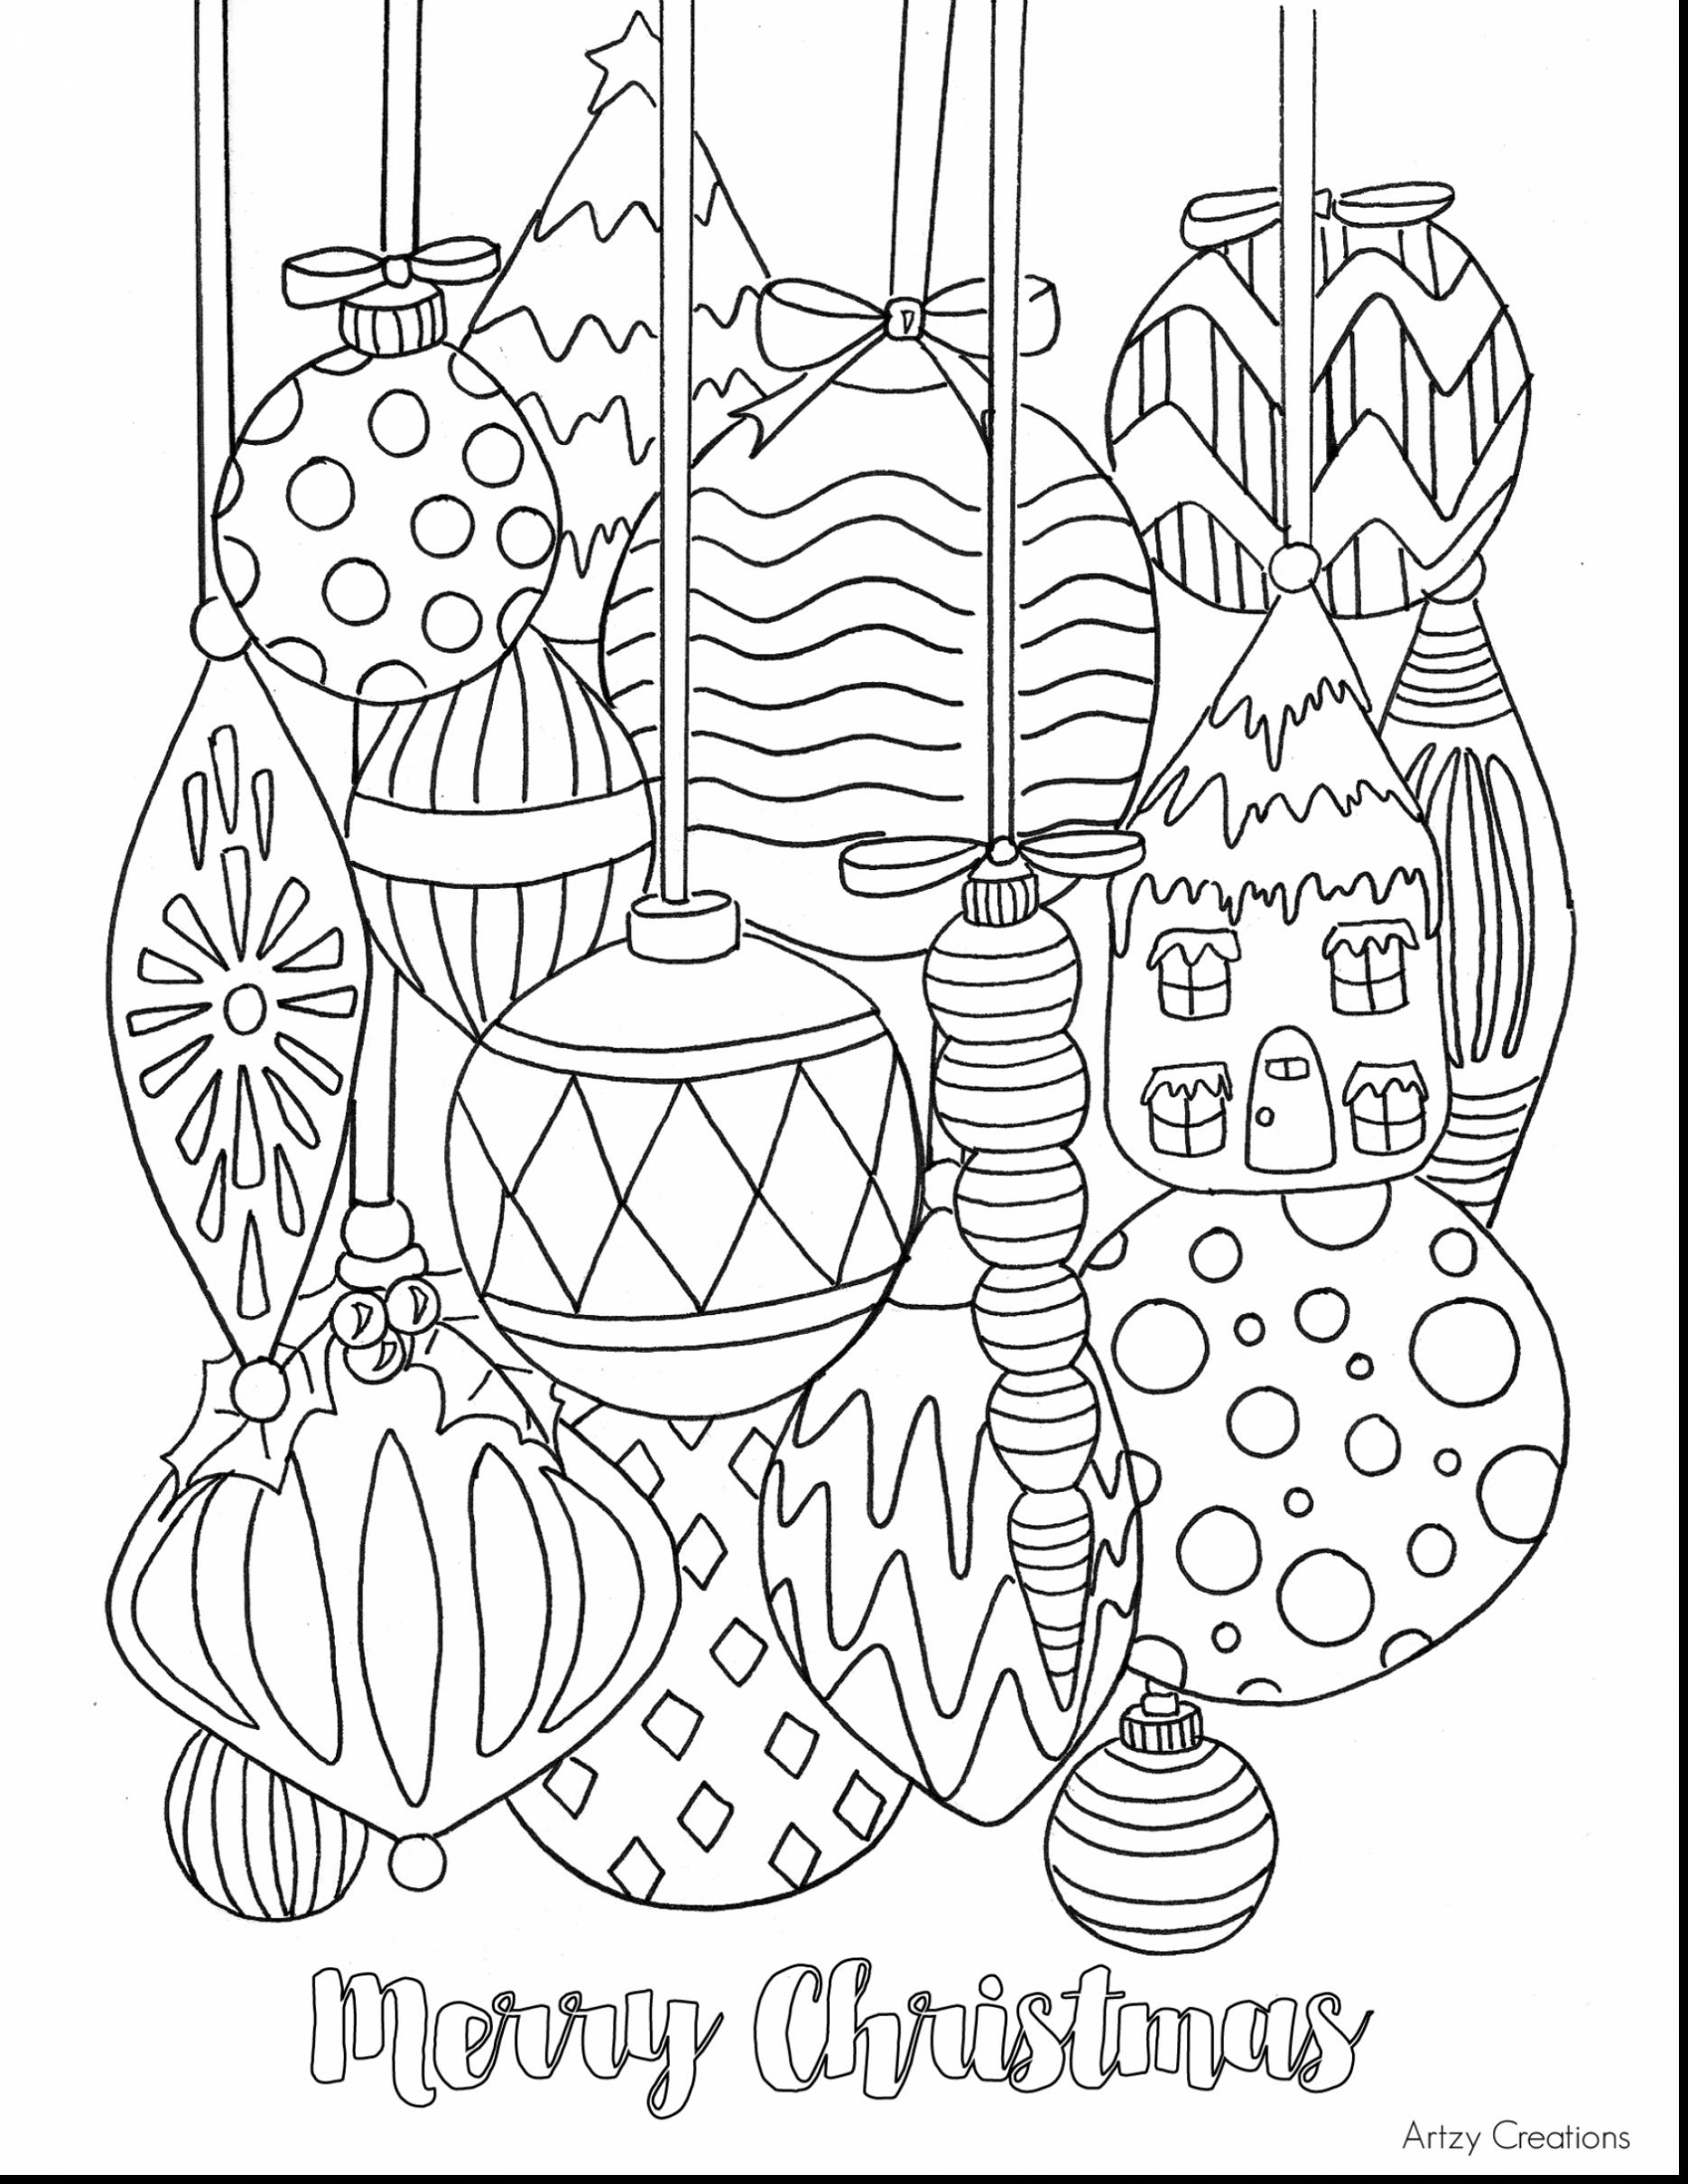 Coloring Pages With Christmas Ornaments Tree For Kids 2024837